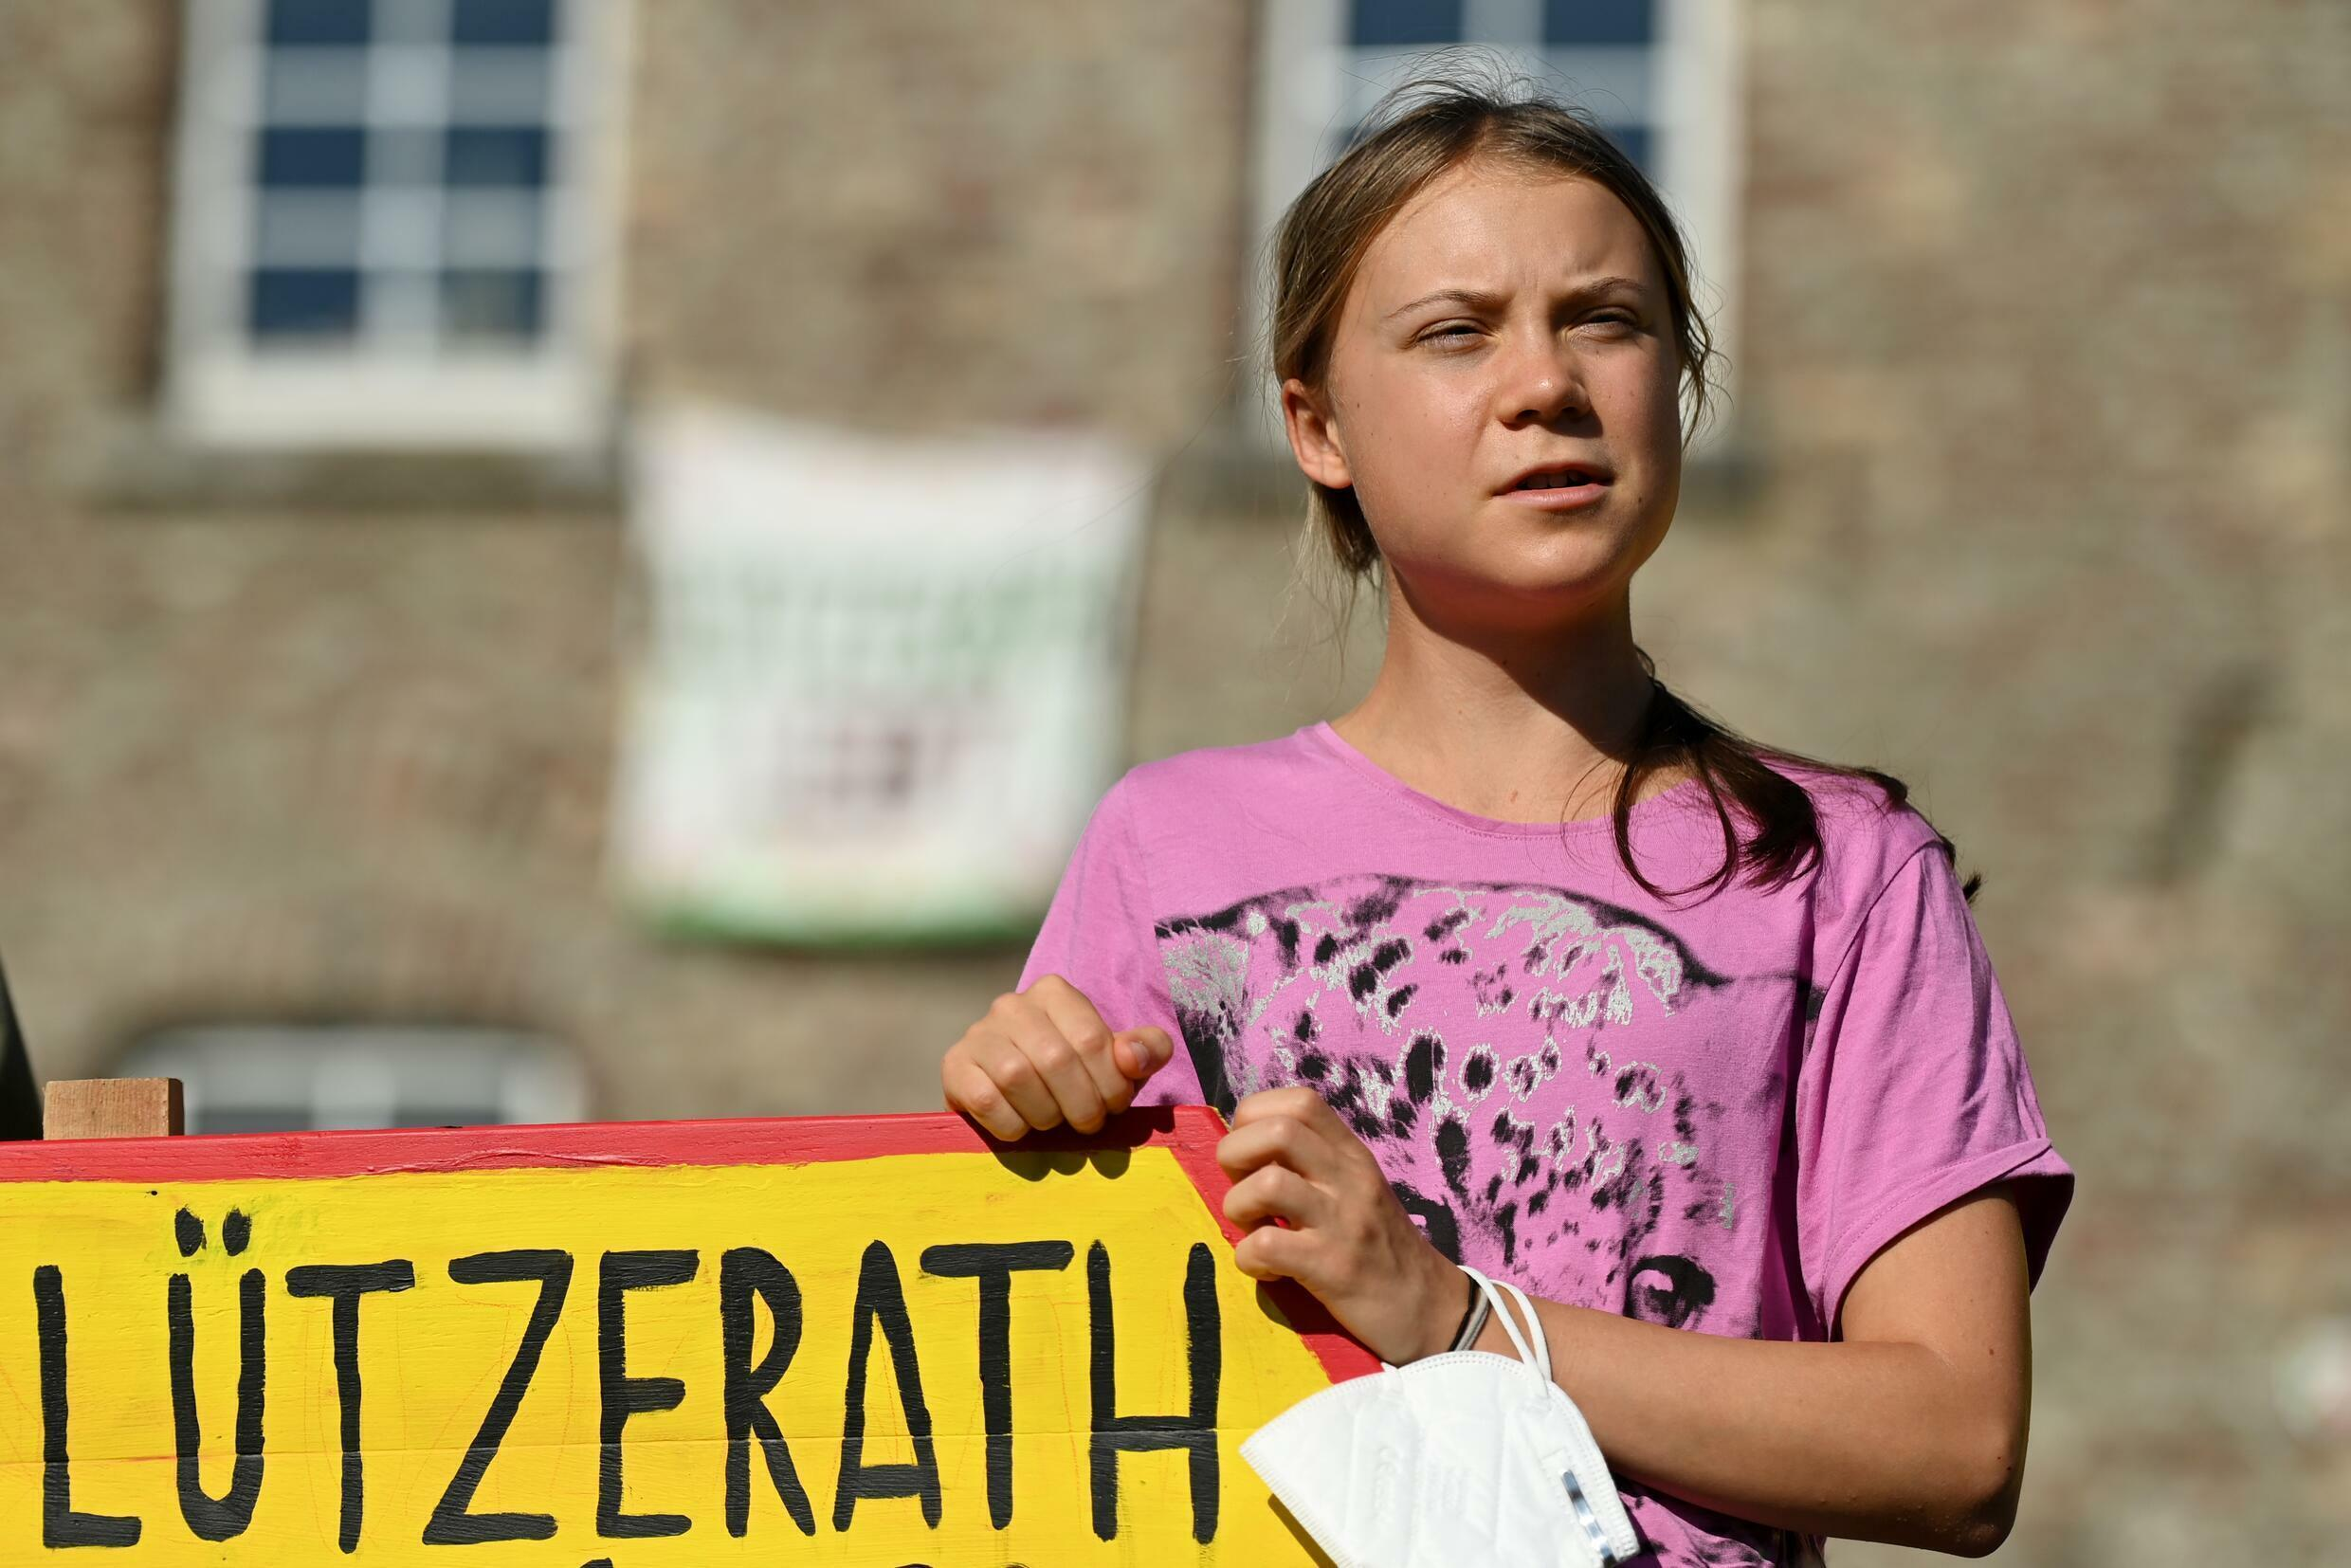 Swedish climate activist Greta Thunberg is among those whose names have sparked a buzz ahead of Friday's announcement